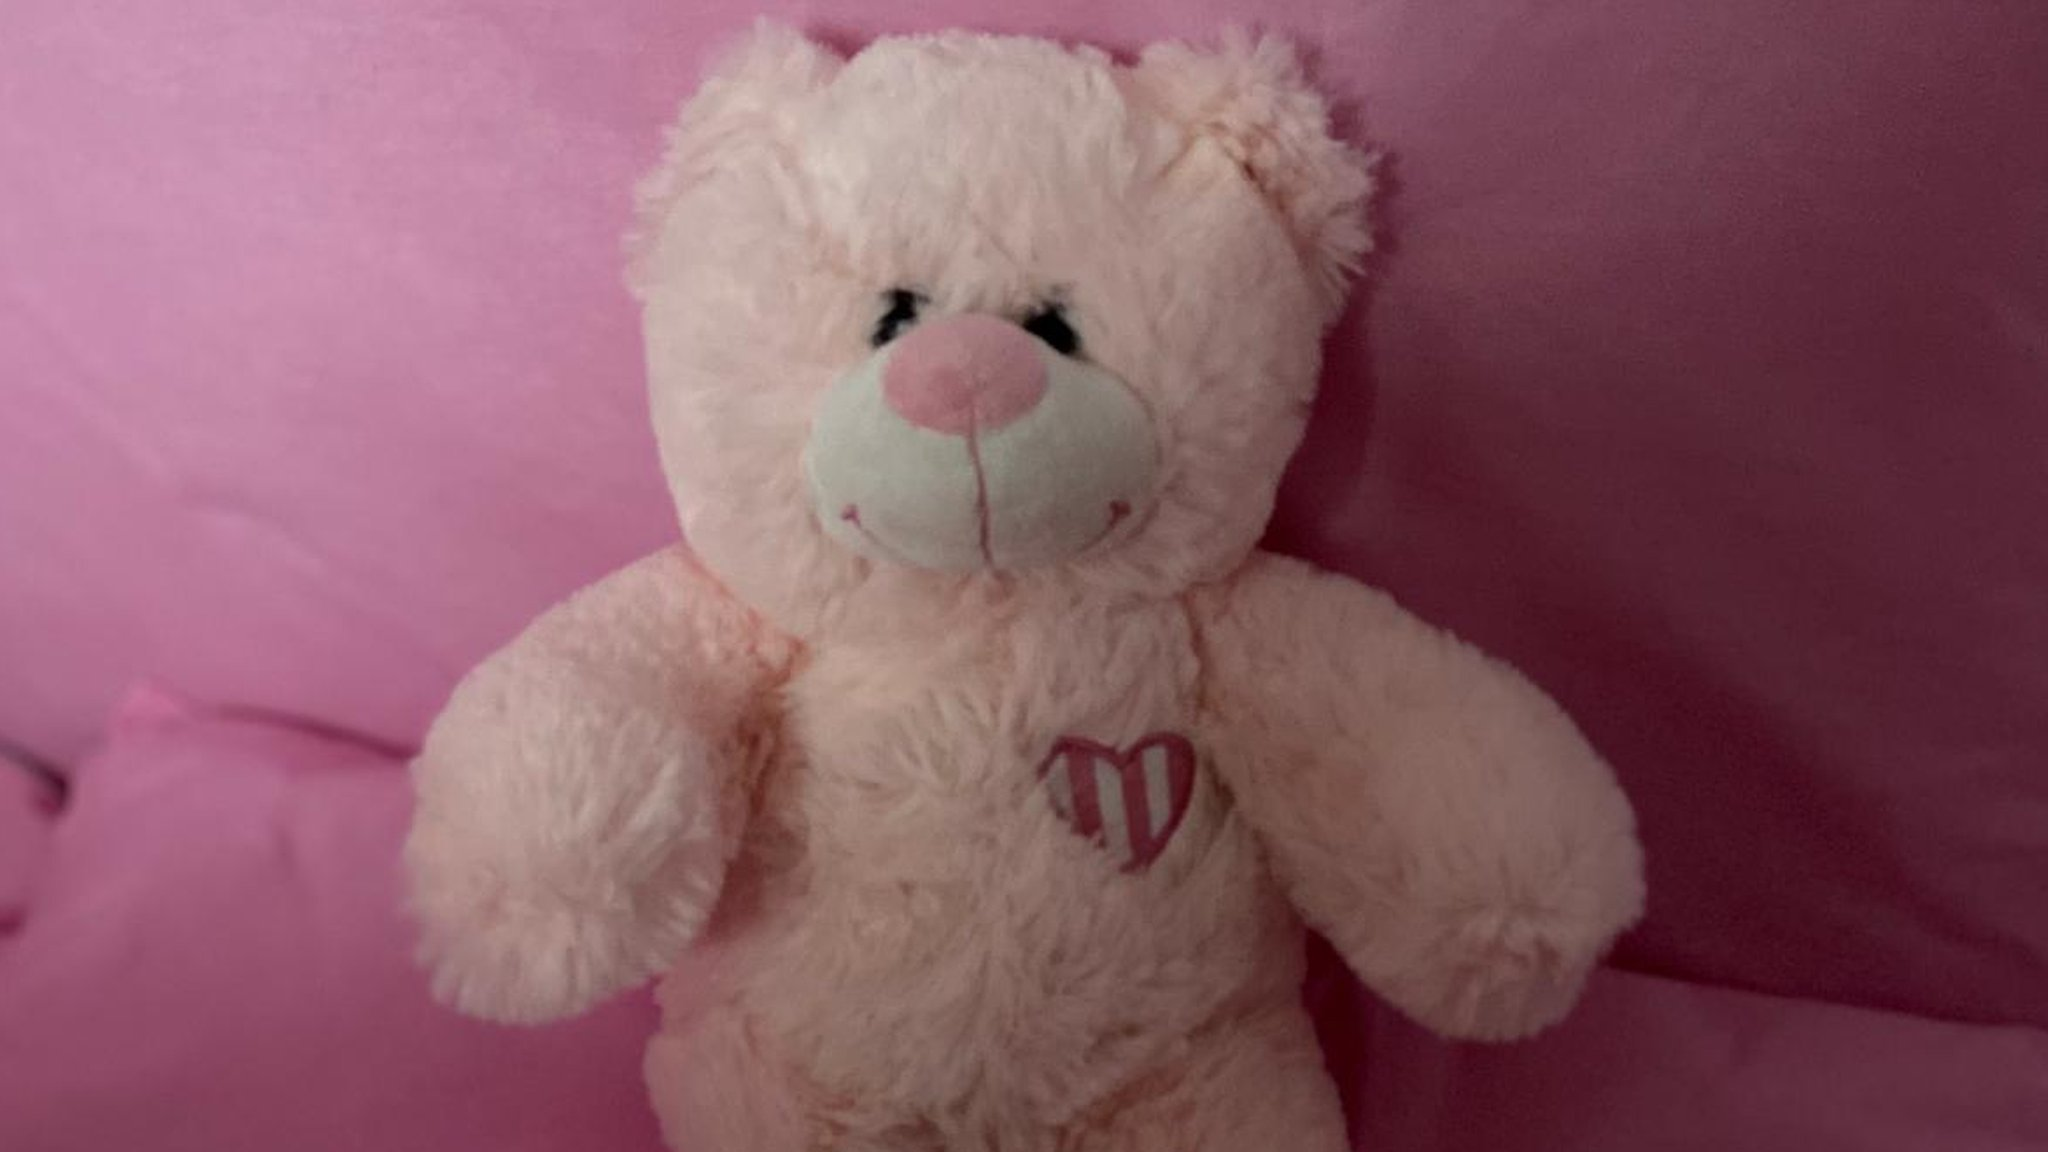 Private baby scan teddy bear